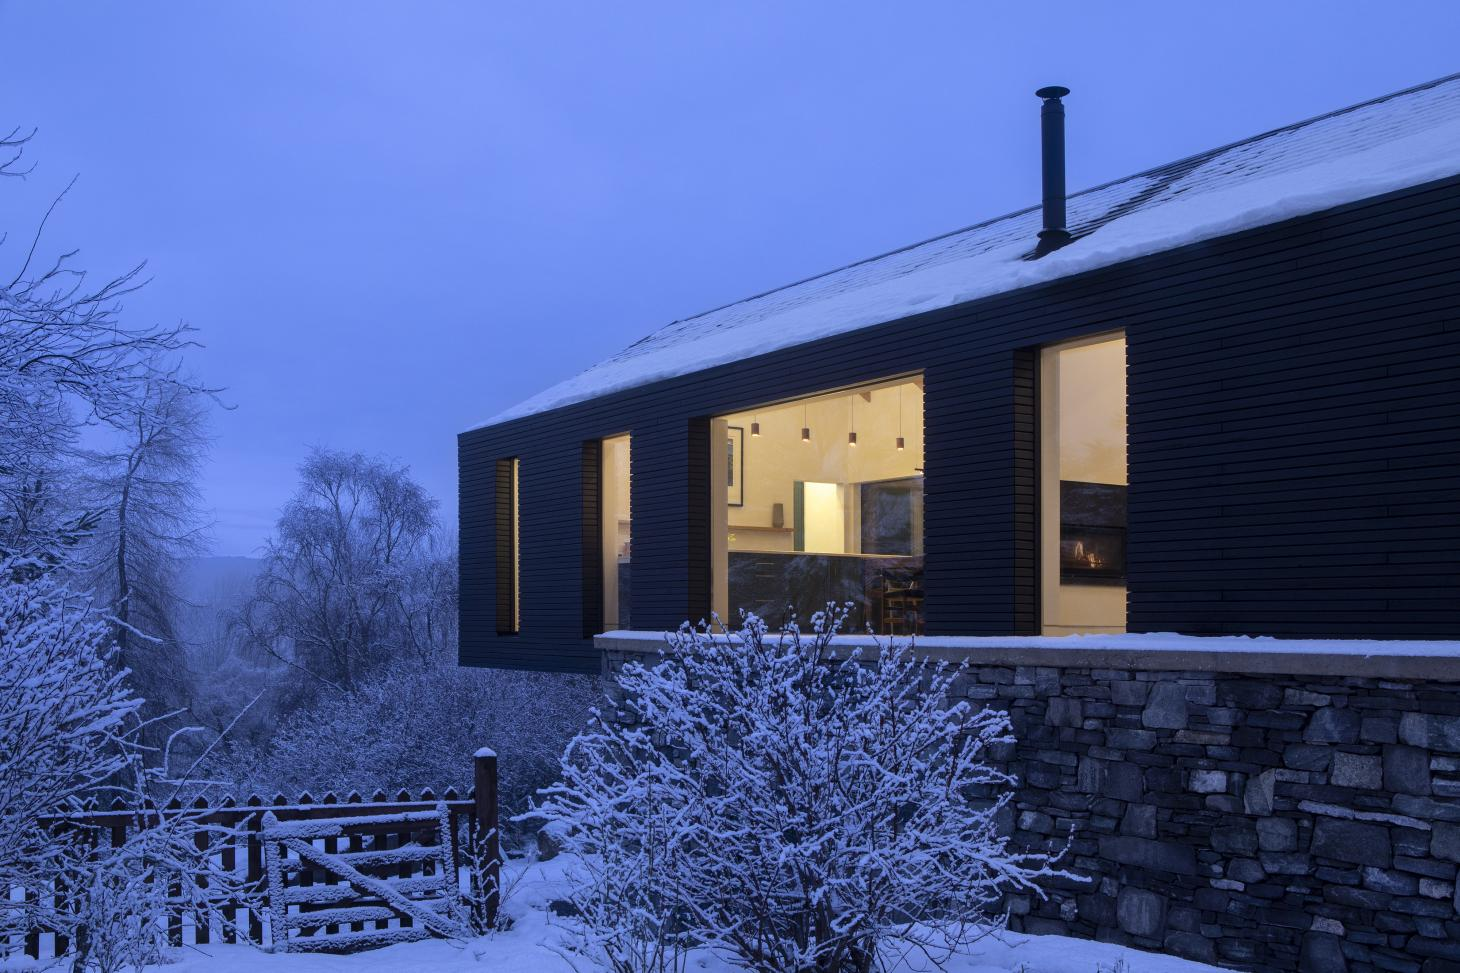 The Lower Tullochgrue House extension is clad in Siberian larch